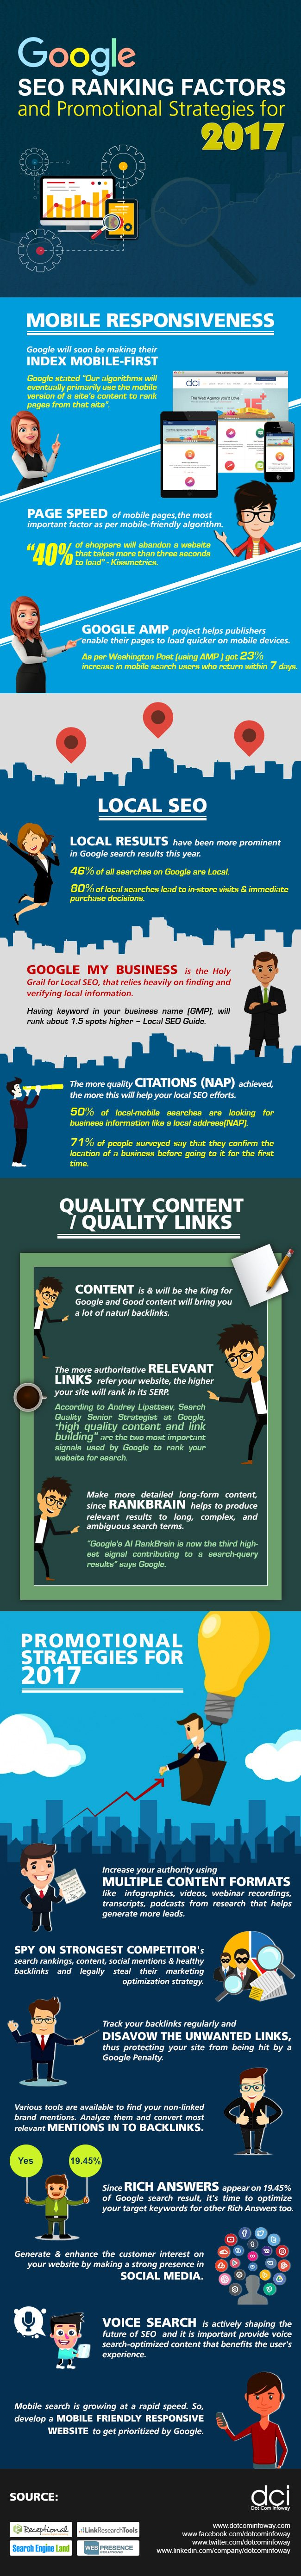 Best strategies for Google SEO rankings and business promotions